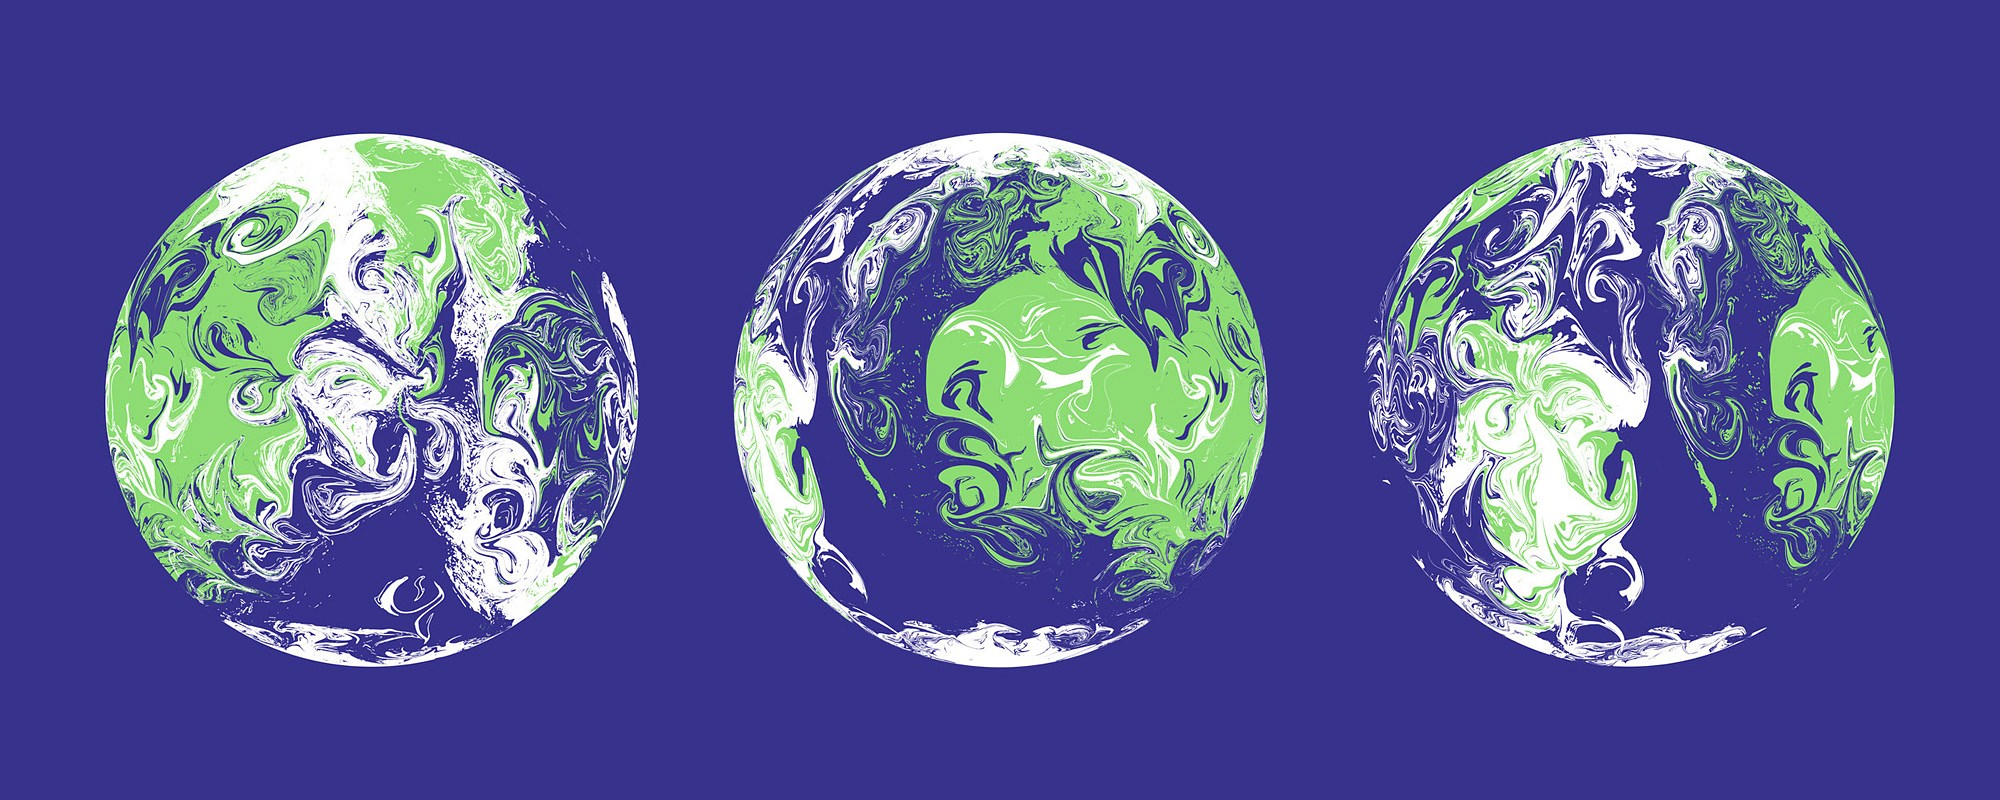 02-un_climate_change_conference_logo_variations.jpg